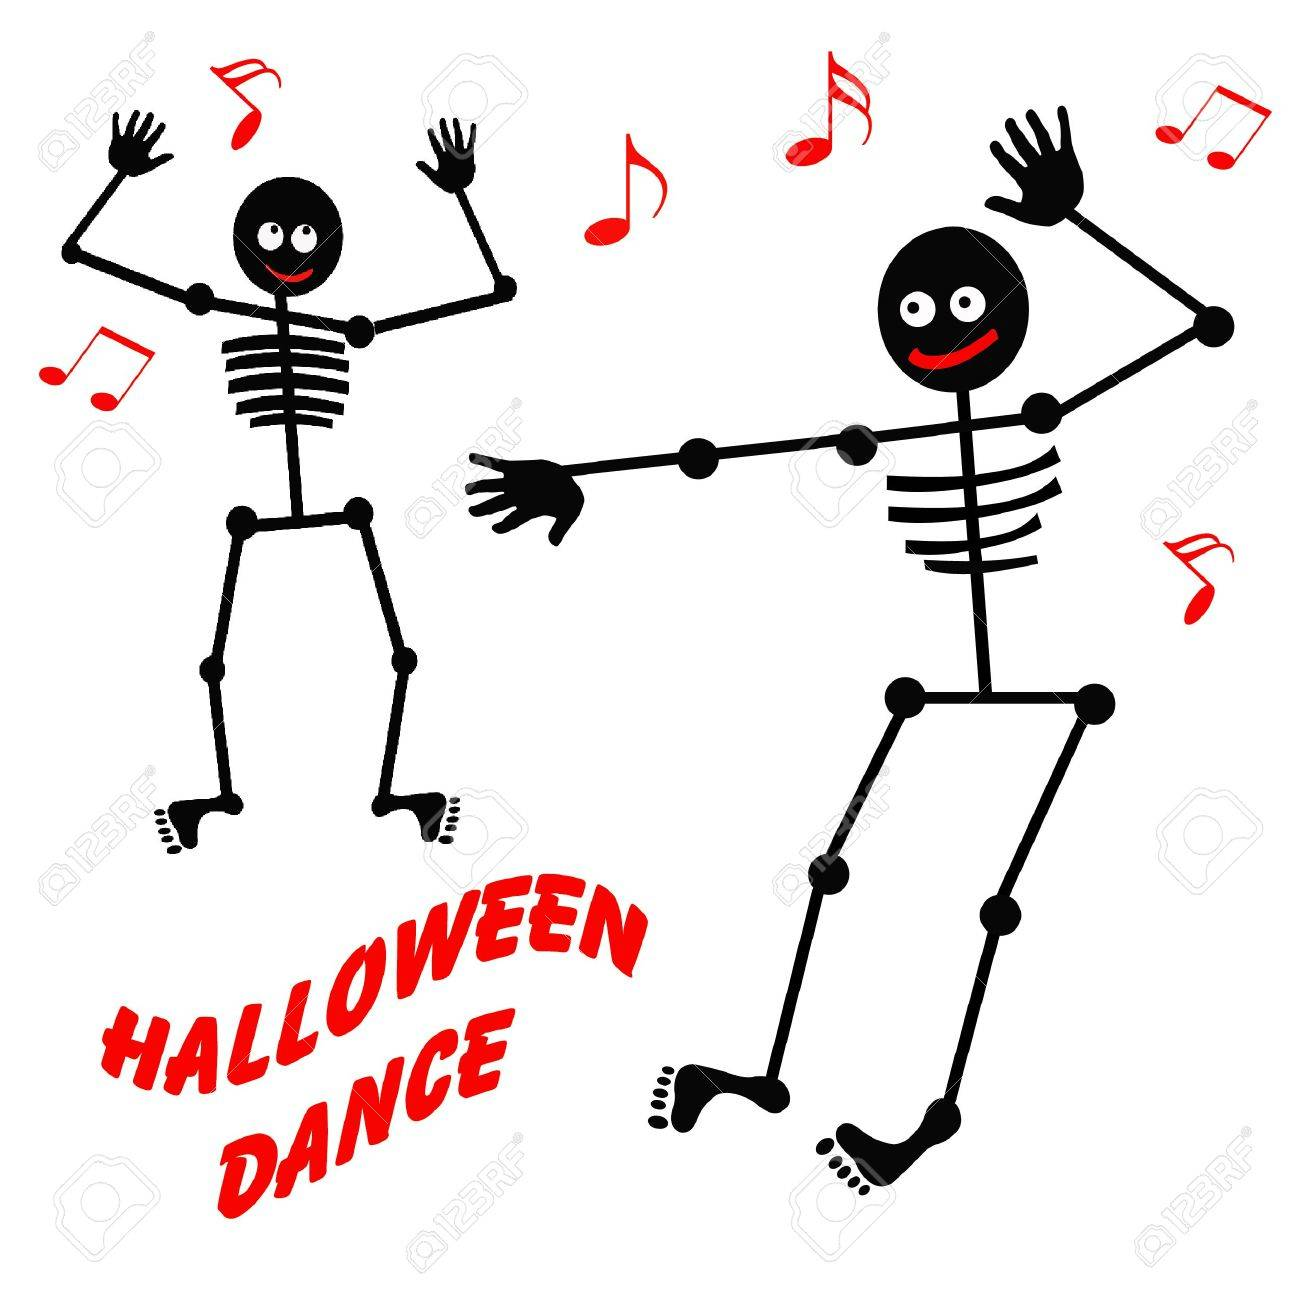 friendly dancing skeleton for halloween black and white stock photo 5187880 - Dancing Halloween